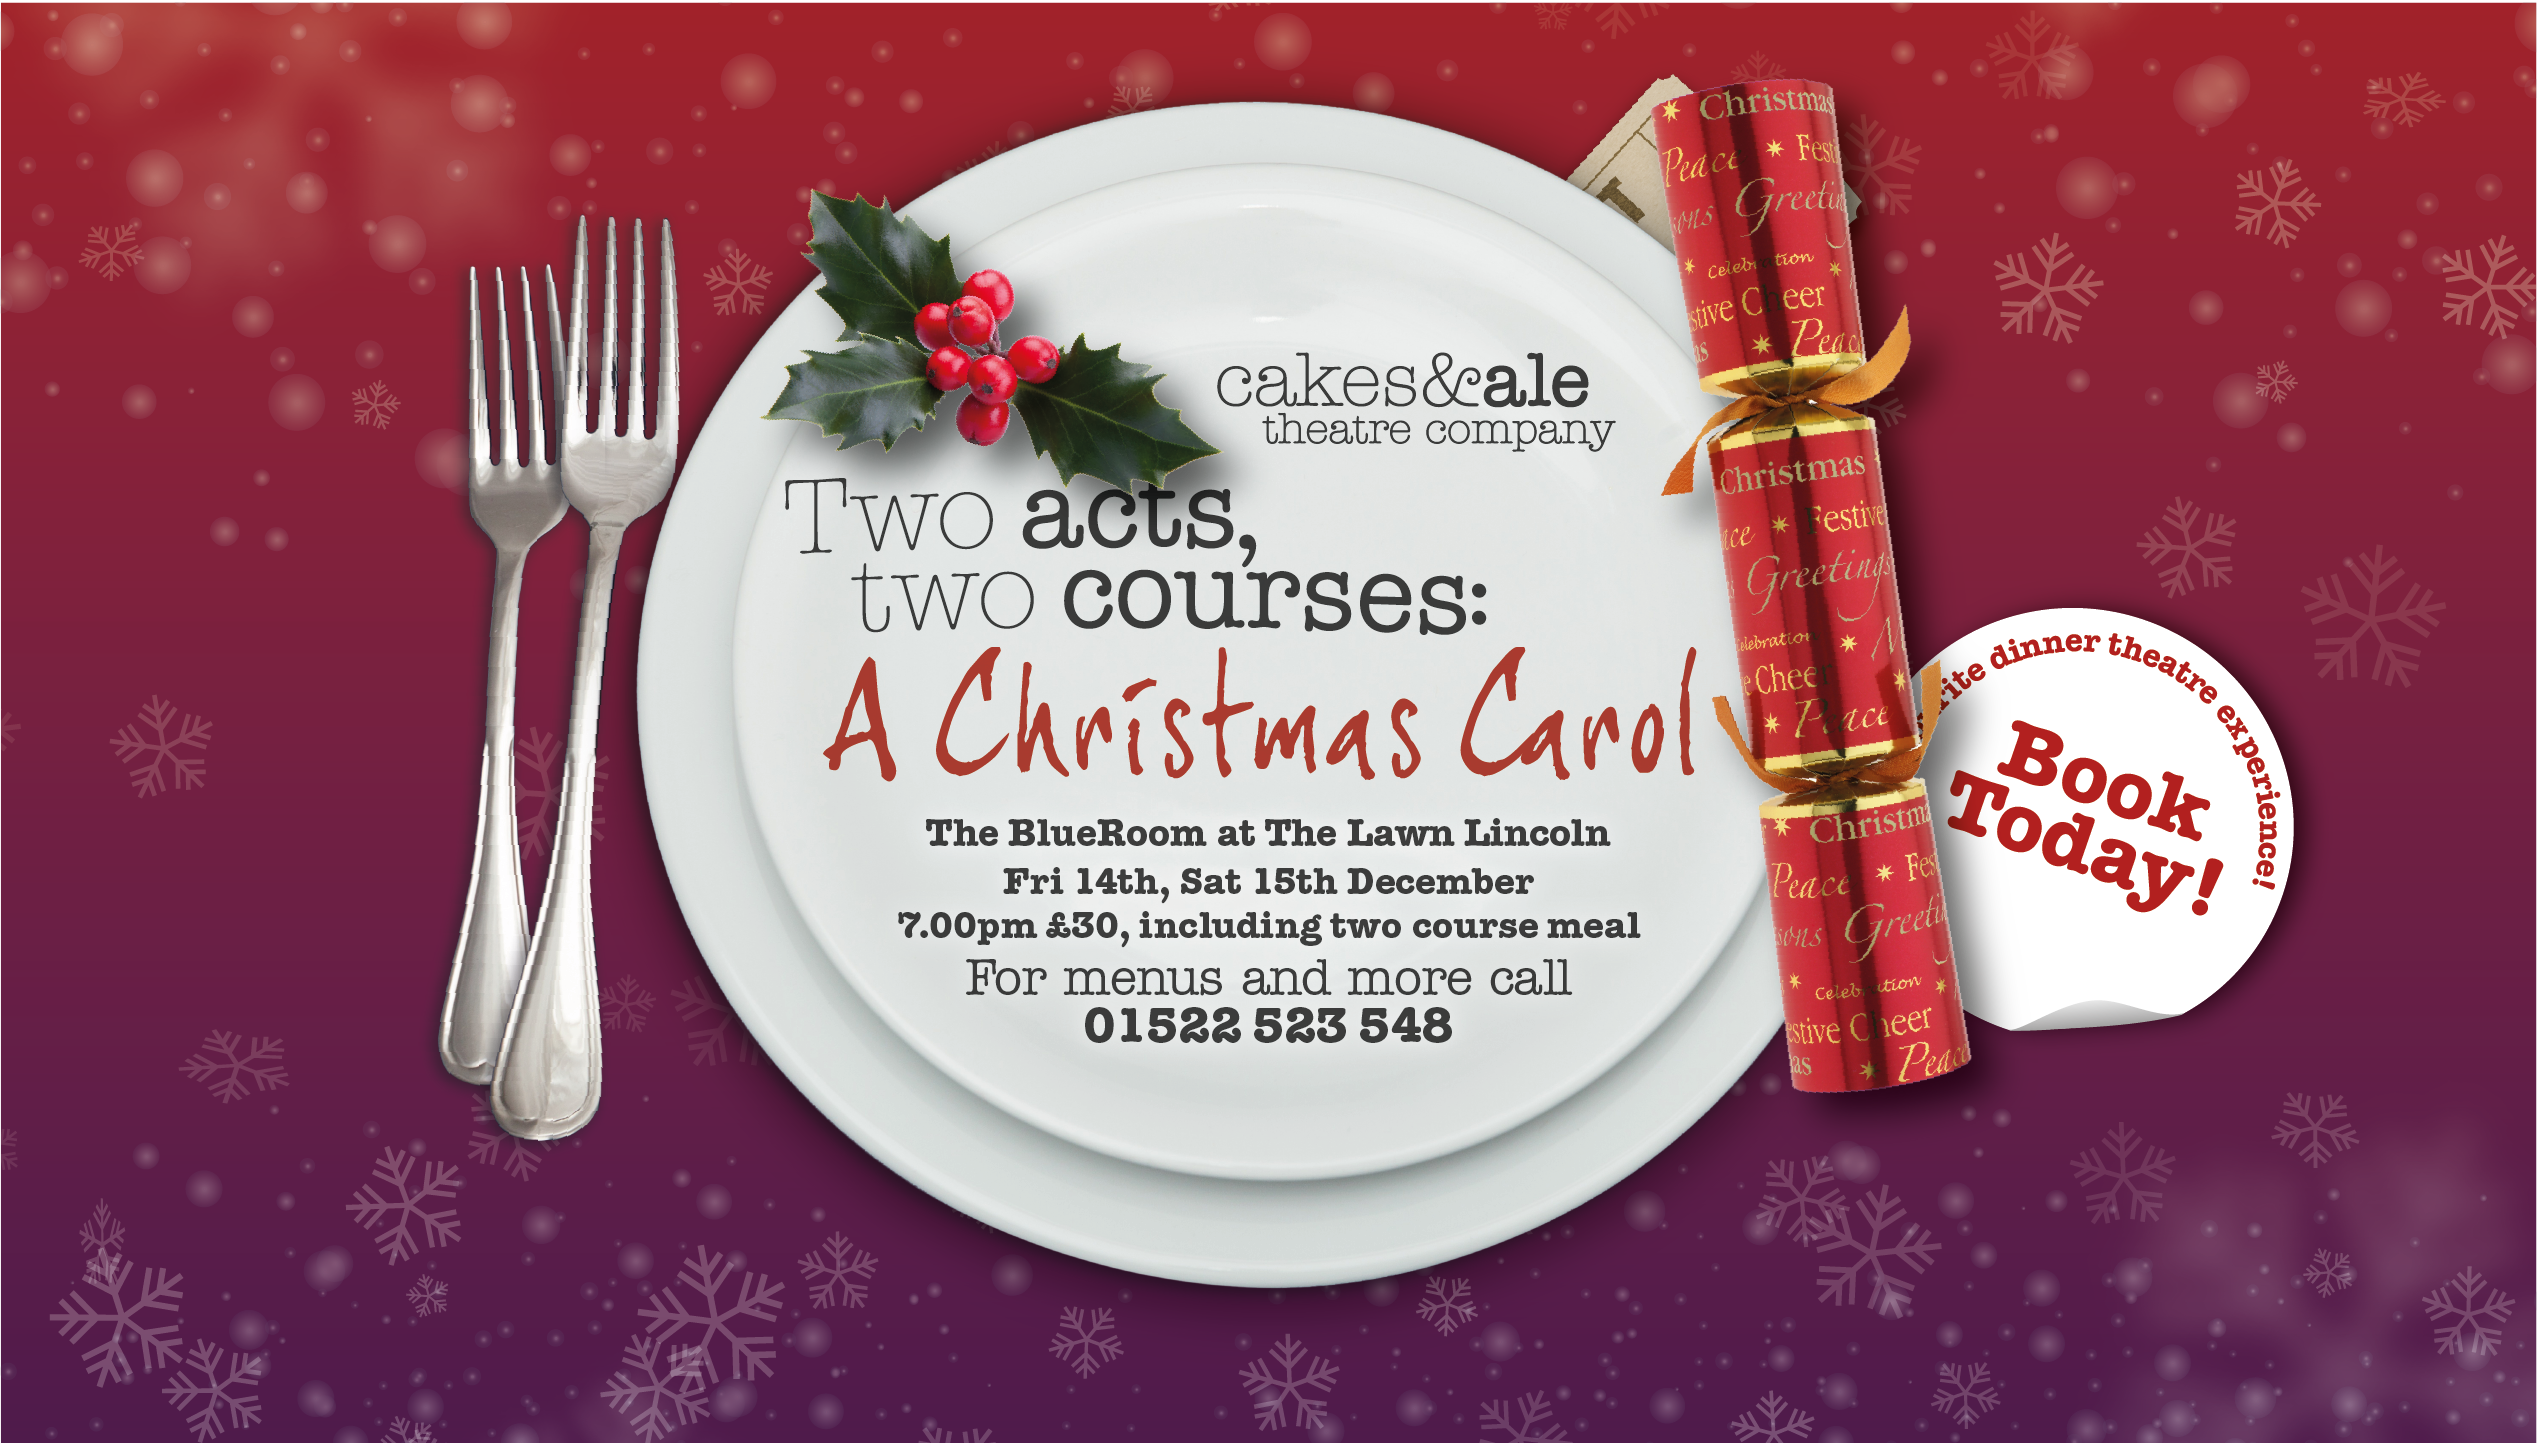 Two Acts - Two Courses. A Christmas Carol